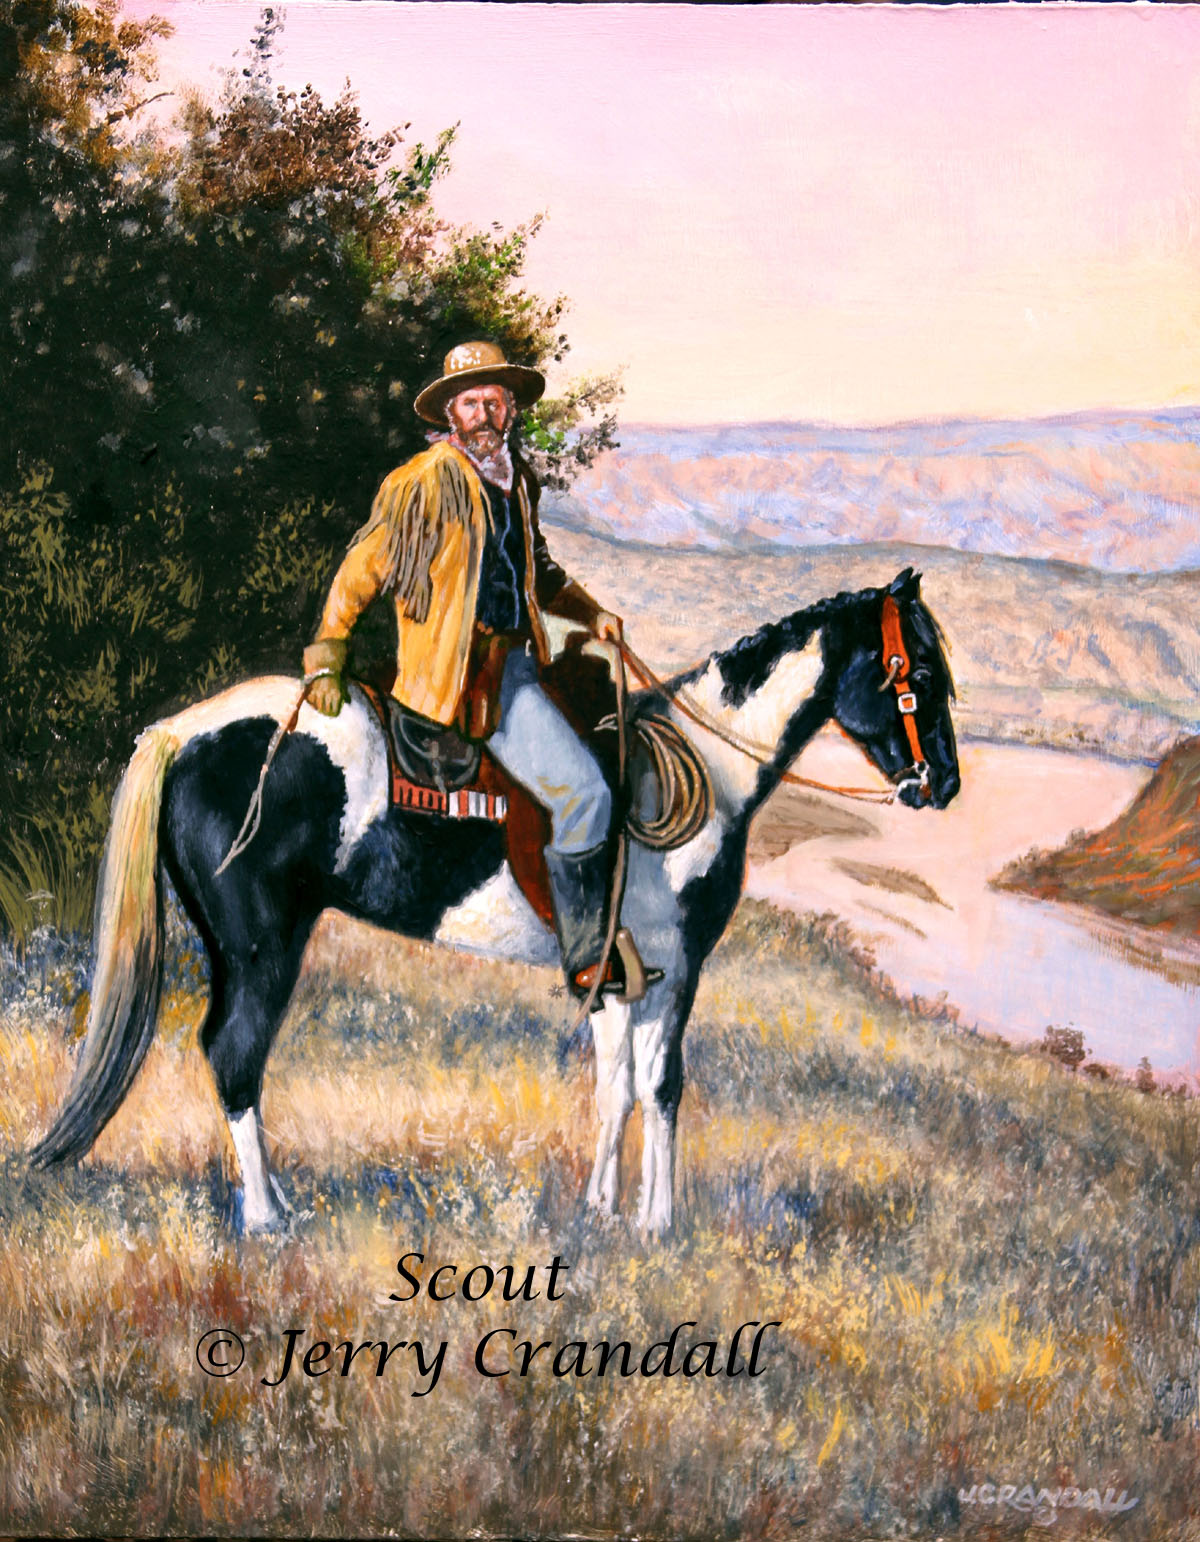 Scout ~ Jerry Crandall